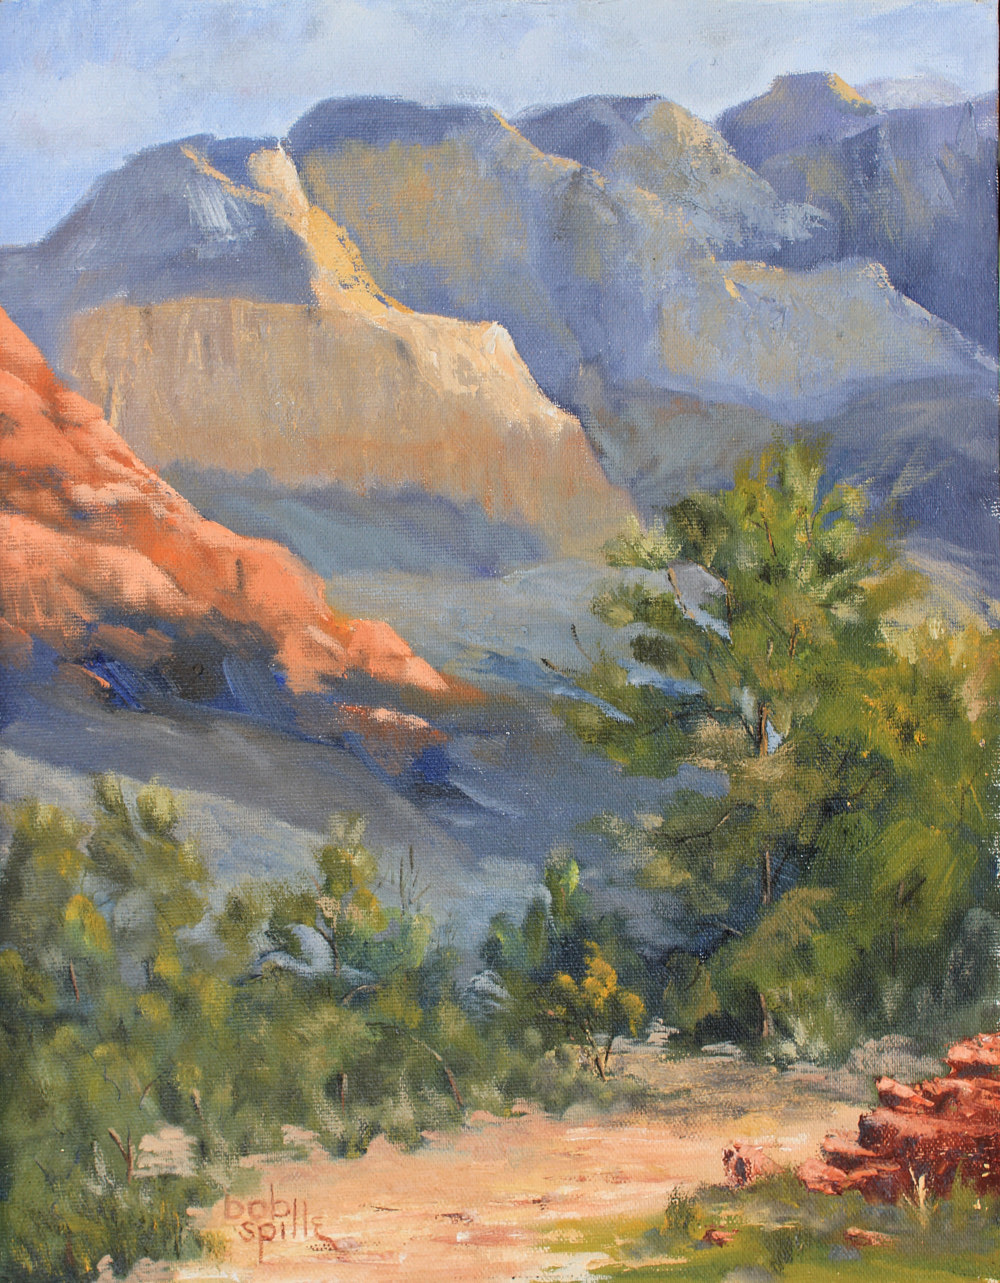 Oil painting October in Sedona by Bob Spille